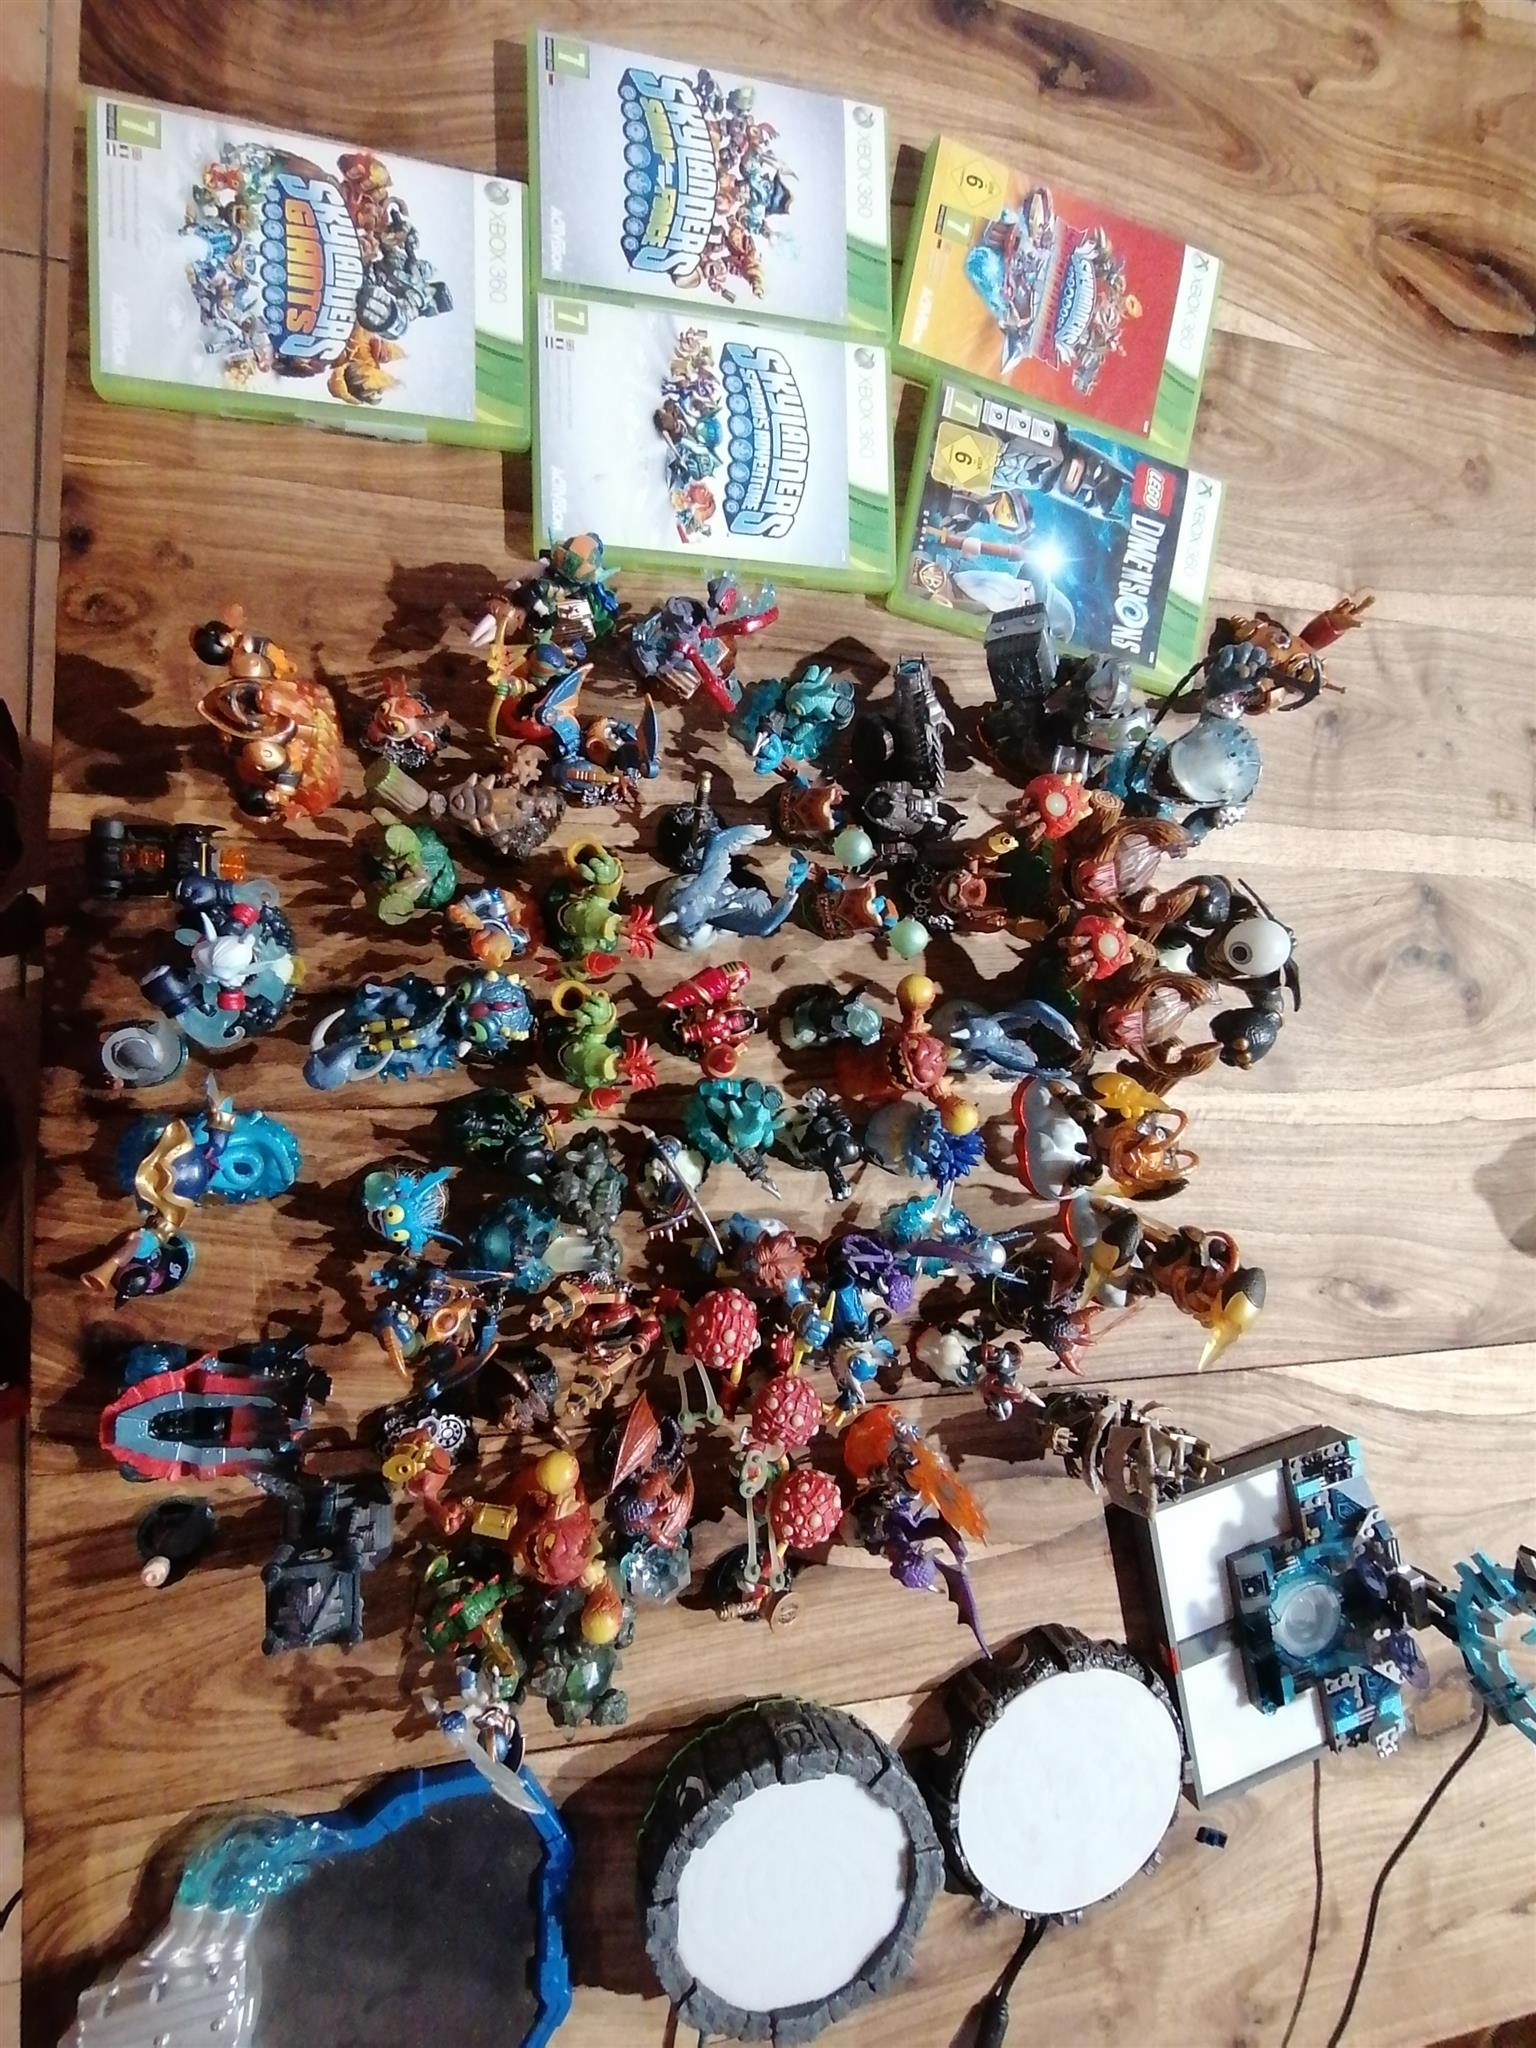 Skylanders and Dimensions games and accessories for sale